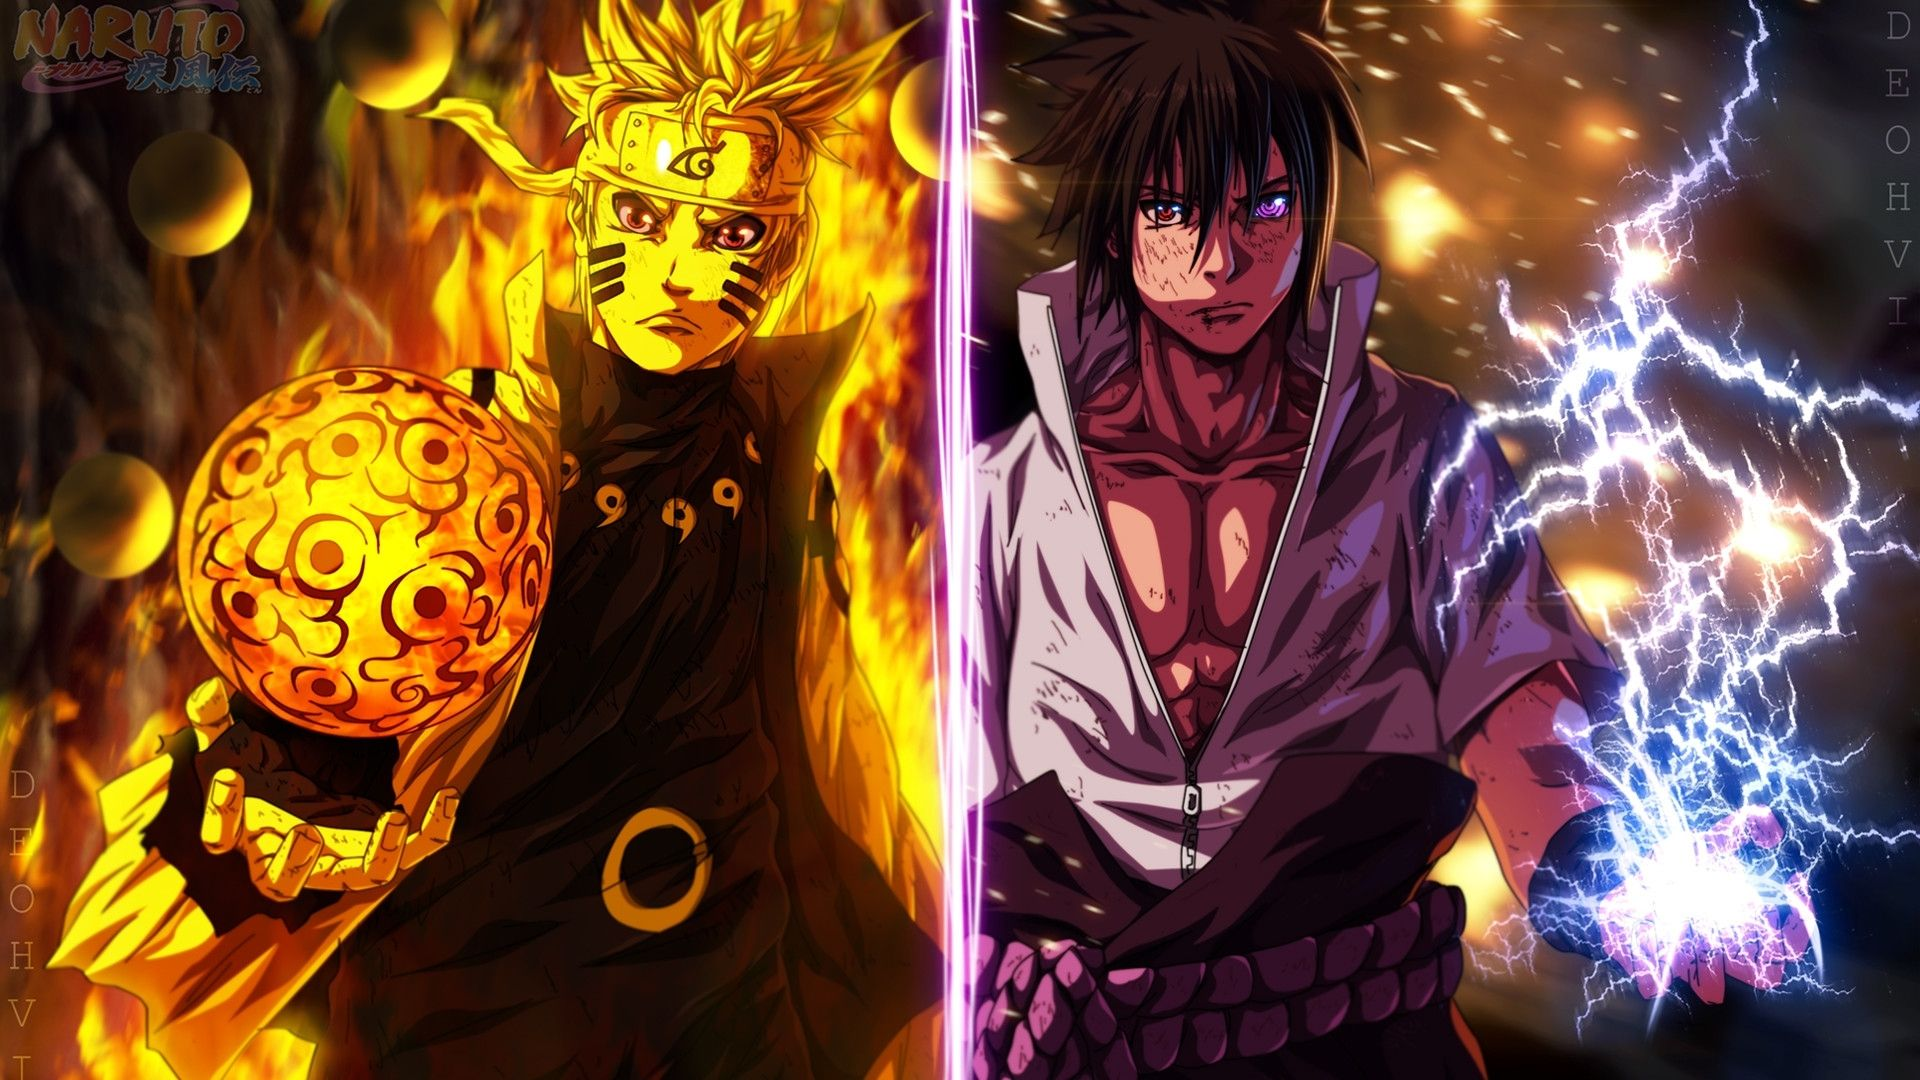 10 Most Popular Naruto Hd Wallpaper 1080p Full Hd 1080p For Pc Background Naruto And Sasuke Wallpaper Wallpaper Naruto Shippuden Naruto Wallpaper